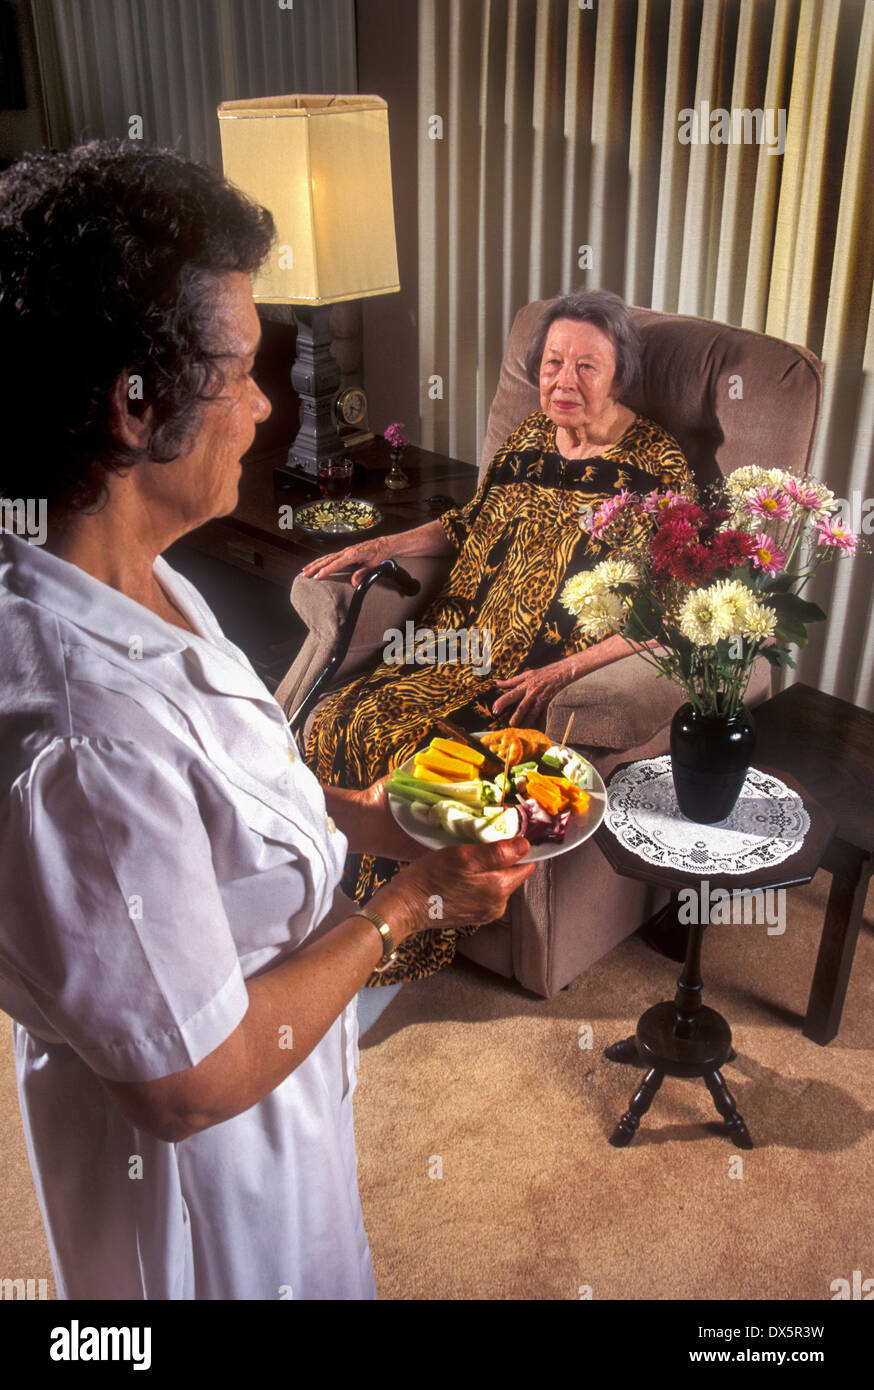 A uniformed Hispanic home healthcare worker serves food to an elderly woman client in Laguna Niguel, CA. Note fresh flowers. - Stock Image